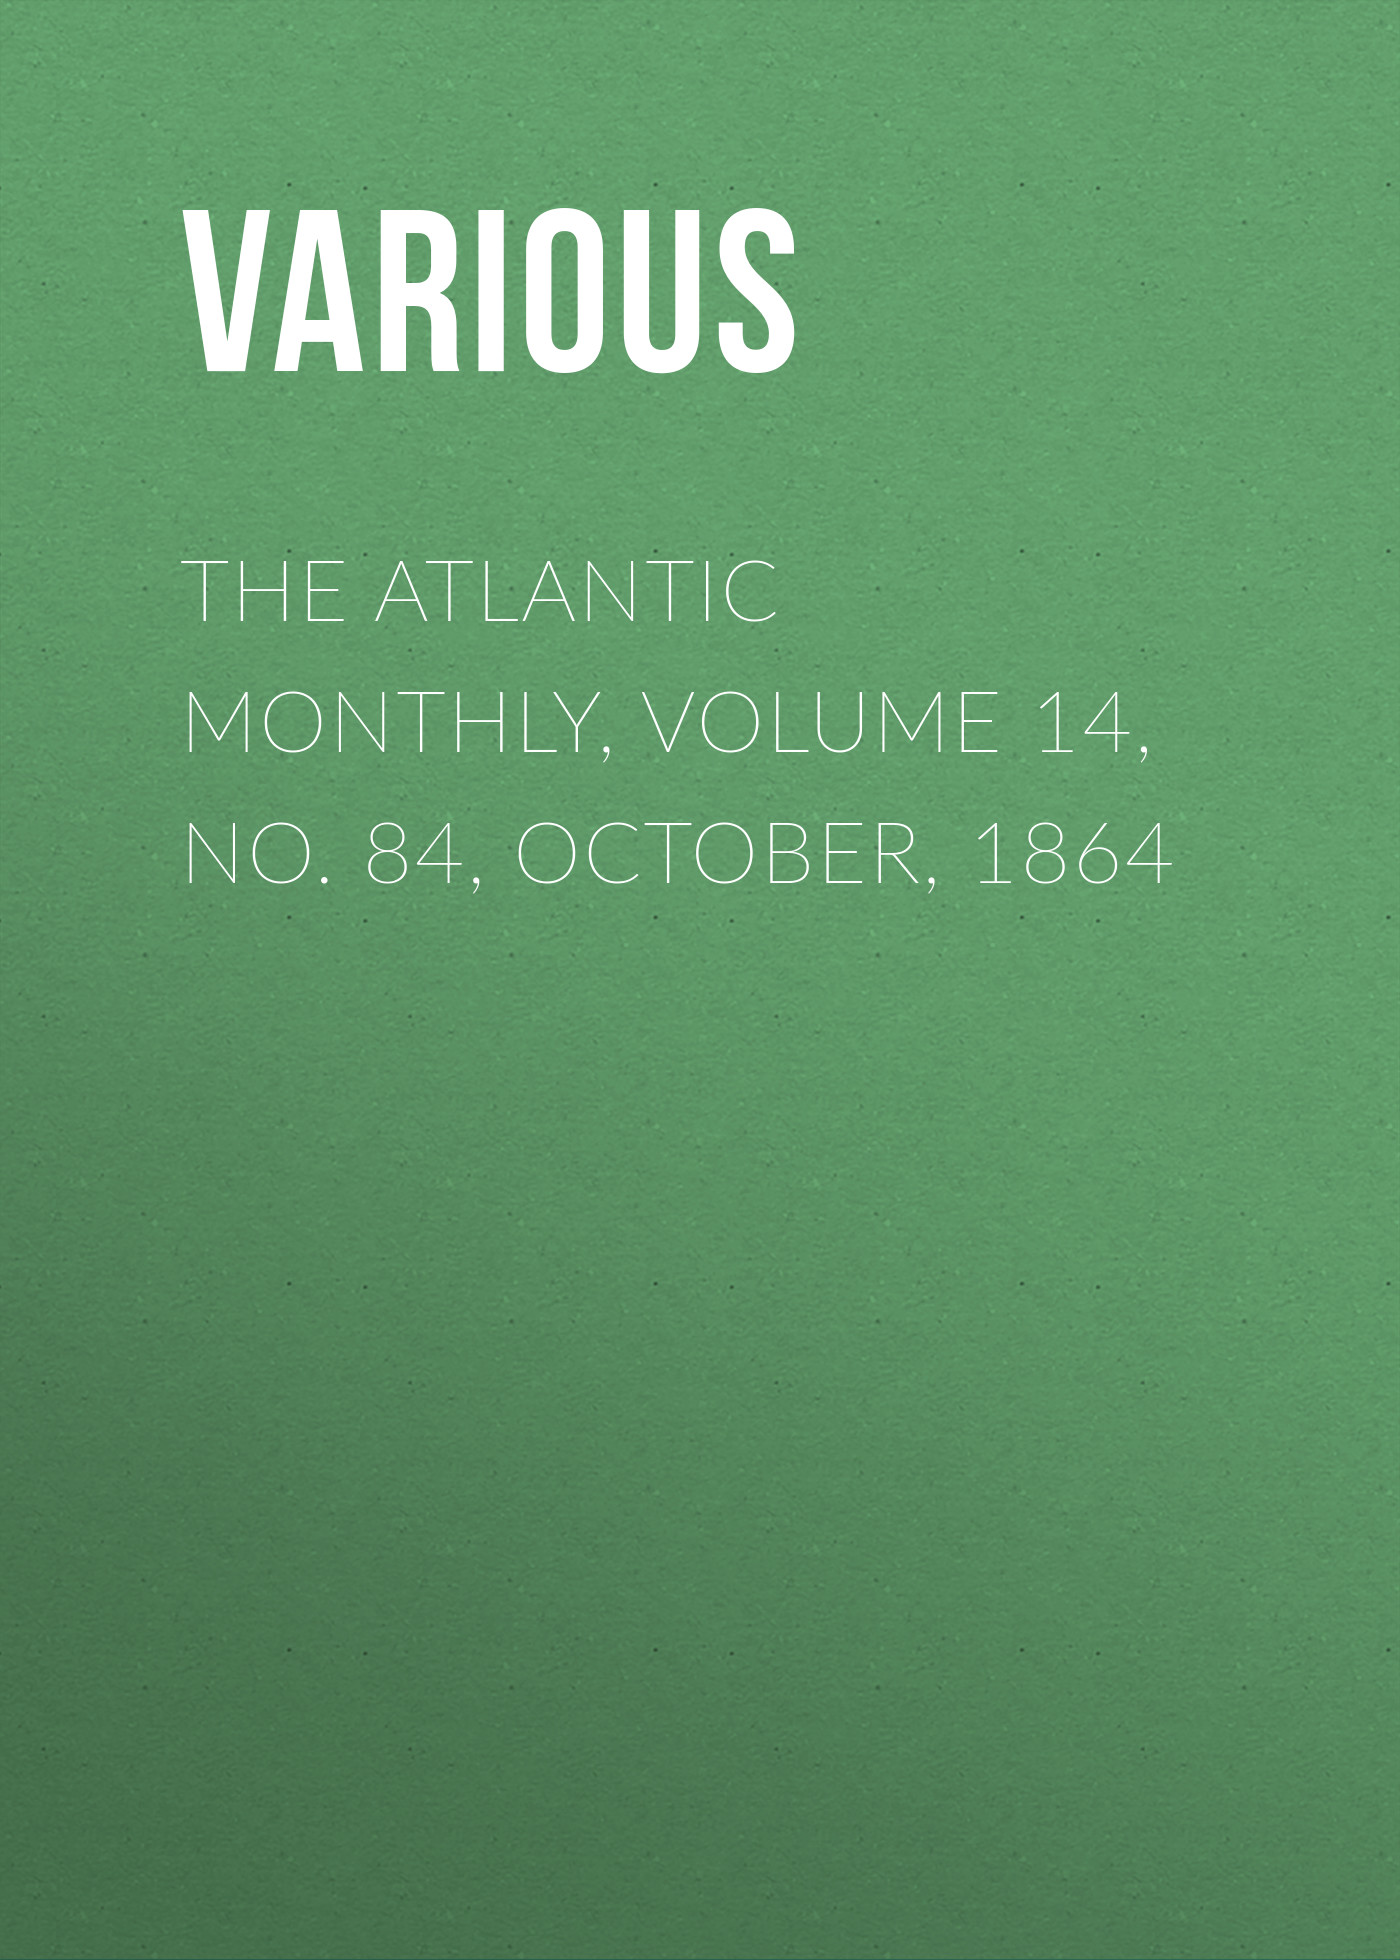 Various The Atlantic Monthly, Volume 14, No. 84, October, 1864 various armour s monthly cook book volume 2 no 12 october 1913